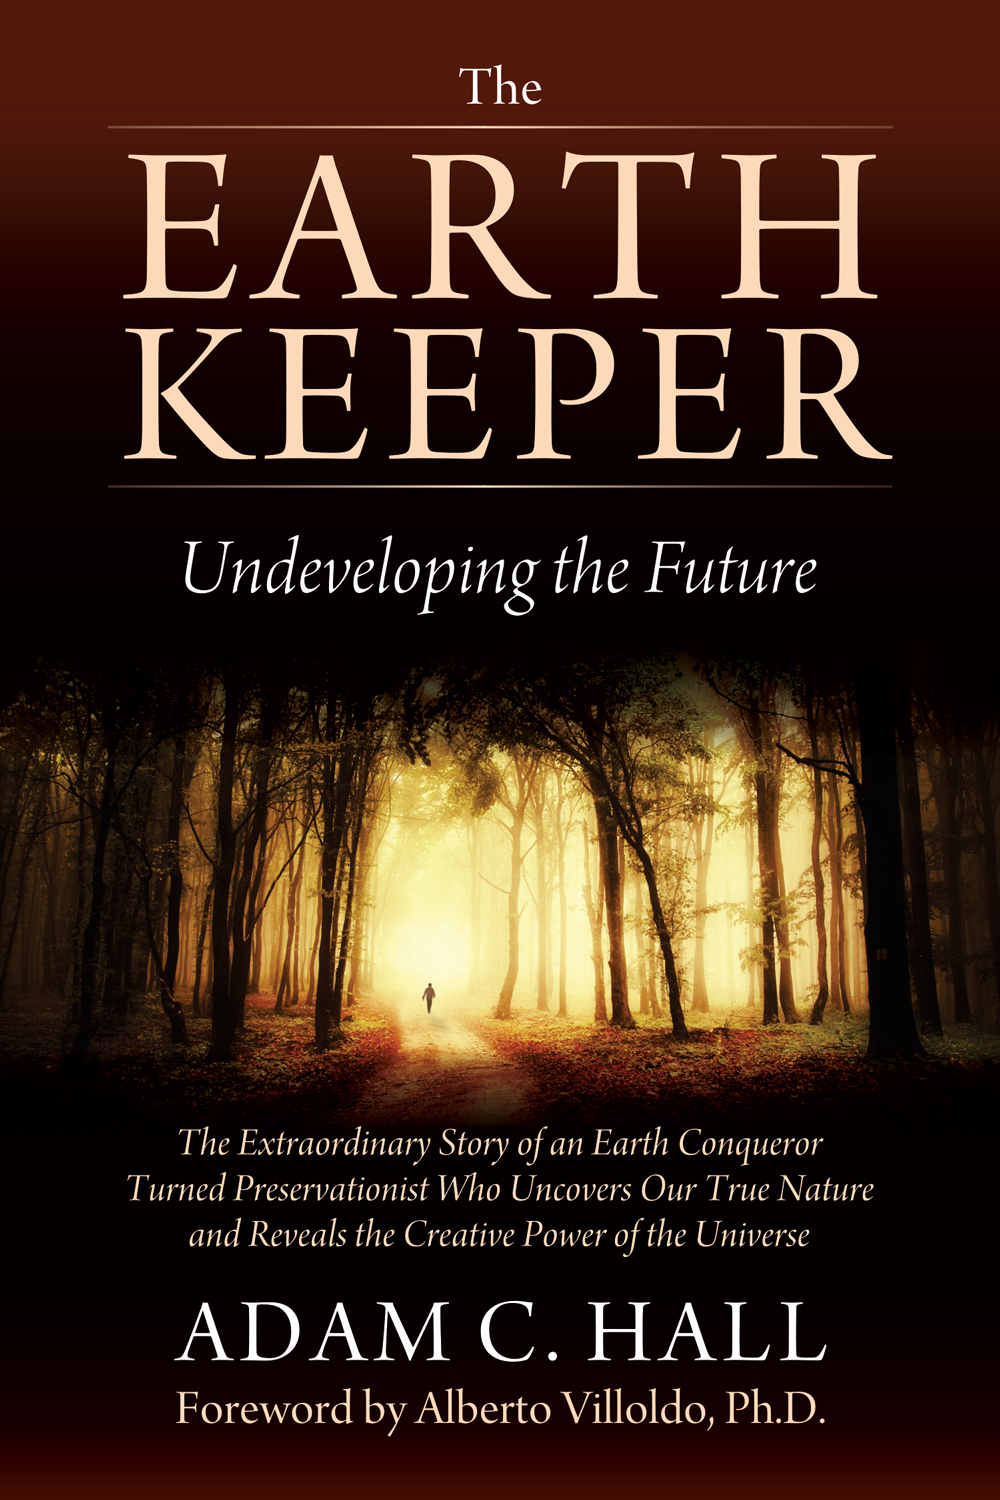 EarthKeeper-Cover_07.jpg